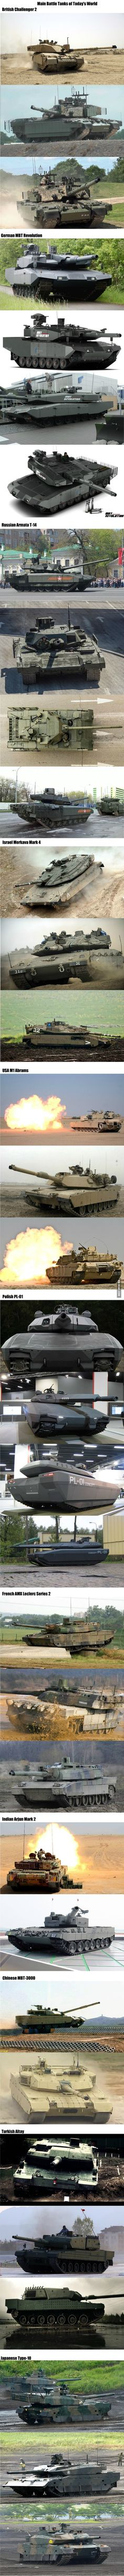 World's Latest Main Battle Tanks